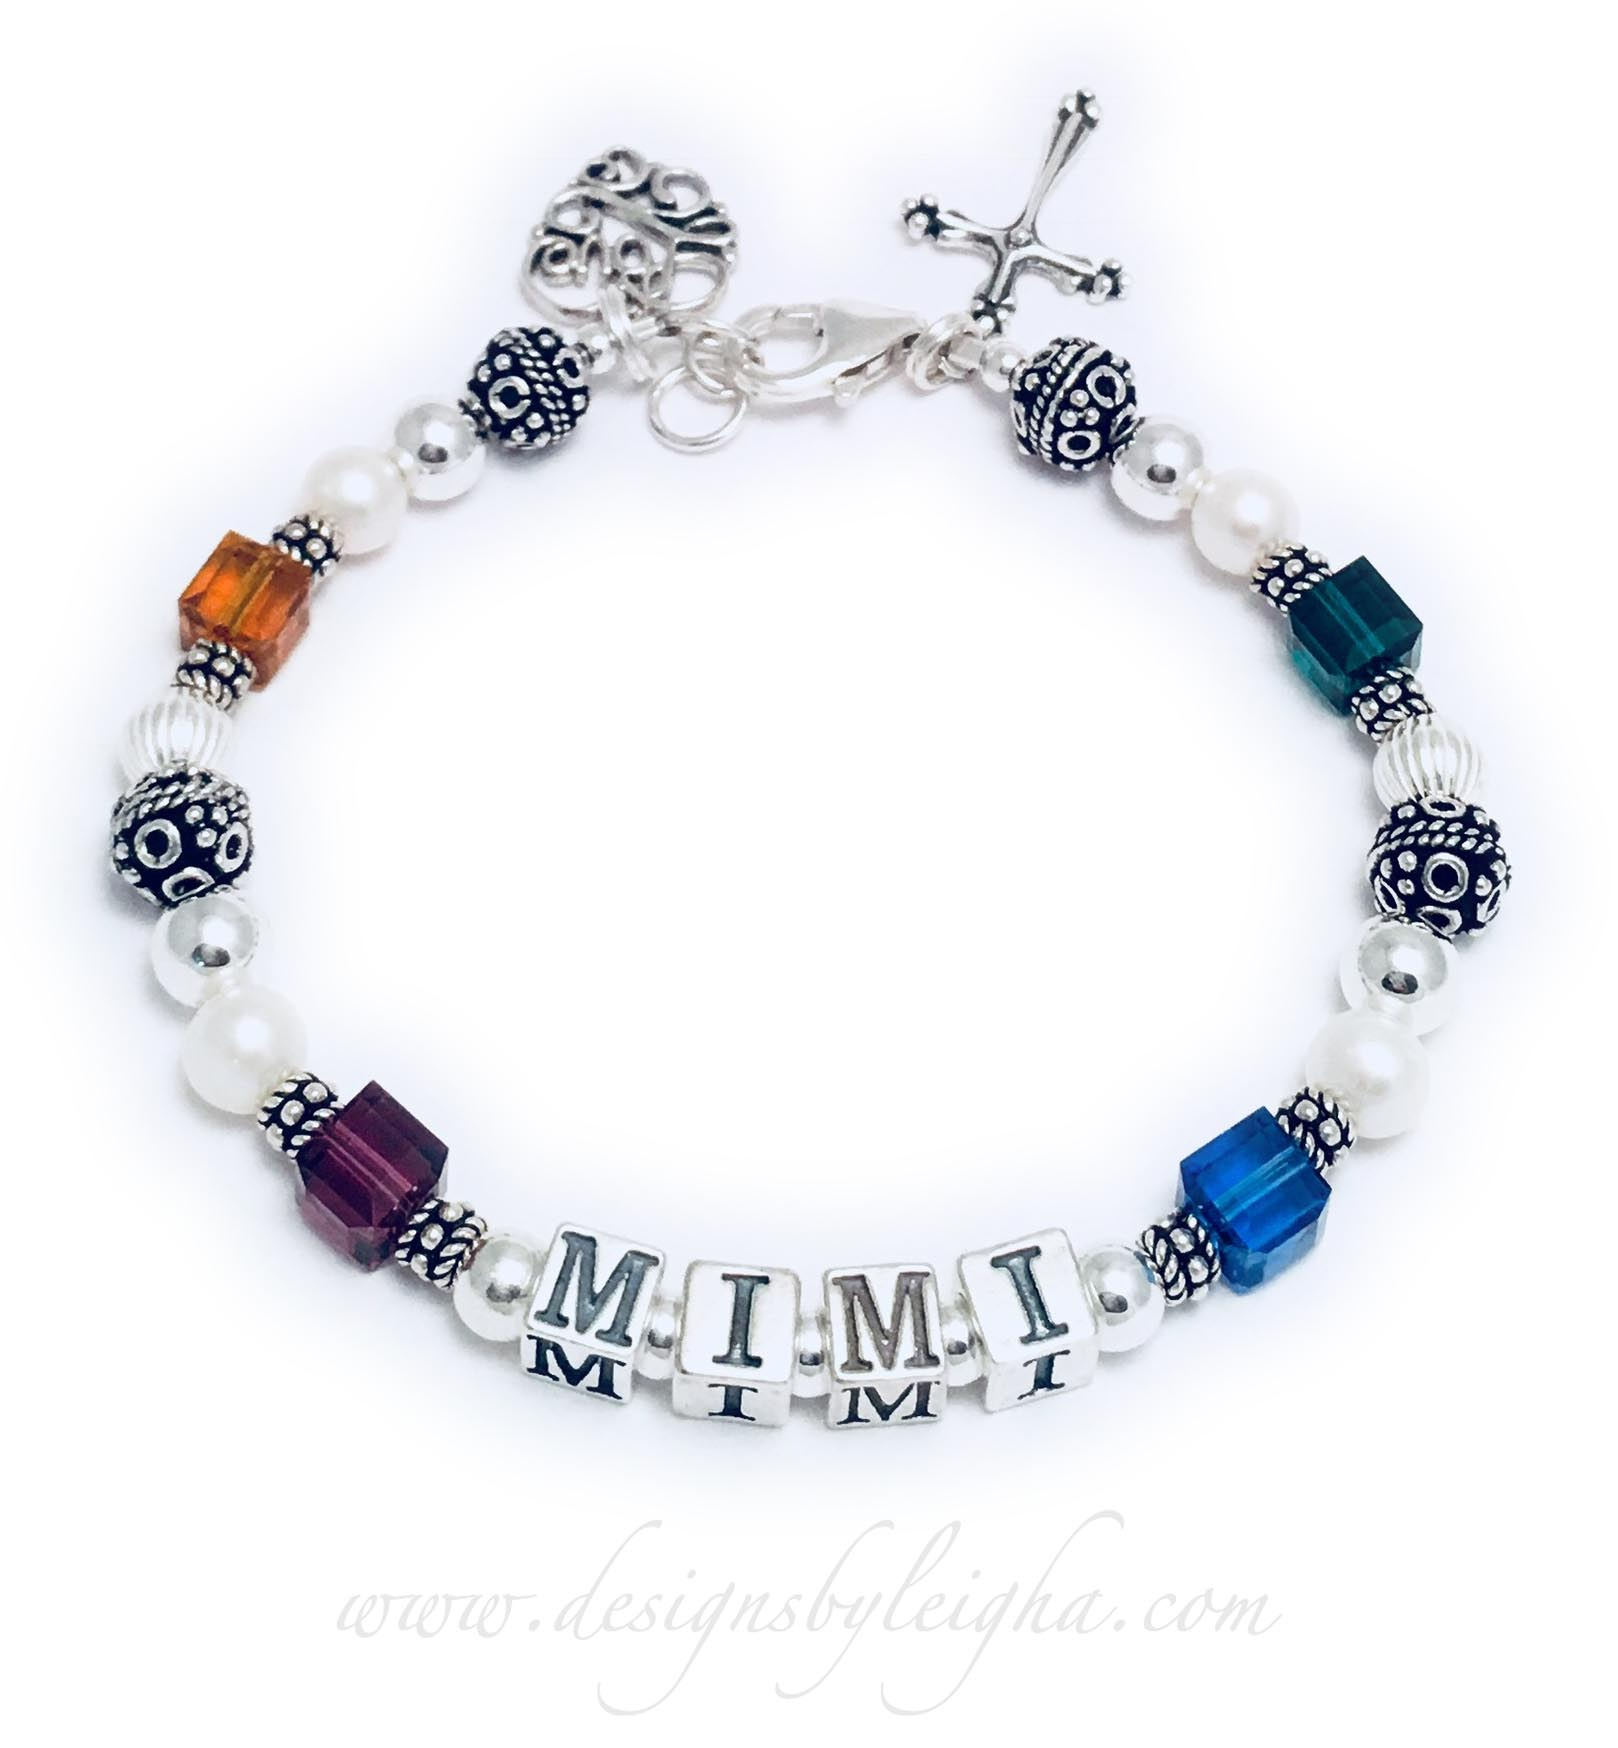 This is a 1-string MIMI Bracelet with 4 birthstones for her grandkids. Shown with a lobster claw clasp. They added 2 charms to their order: Filigree Charm and Fancy Cross Charm.